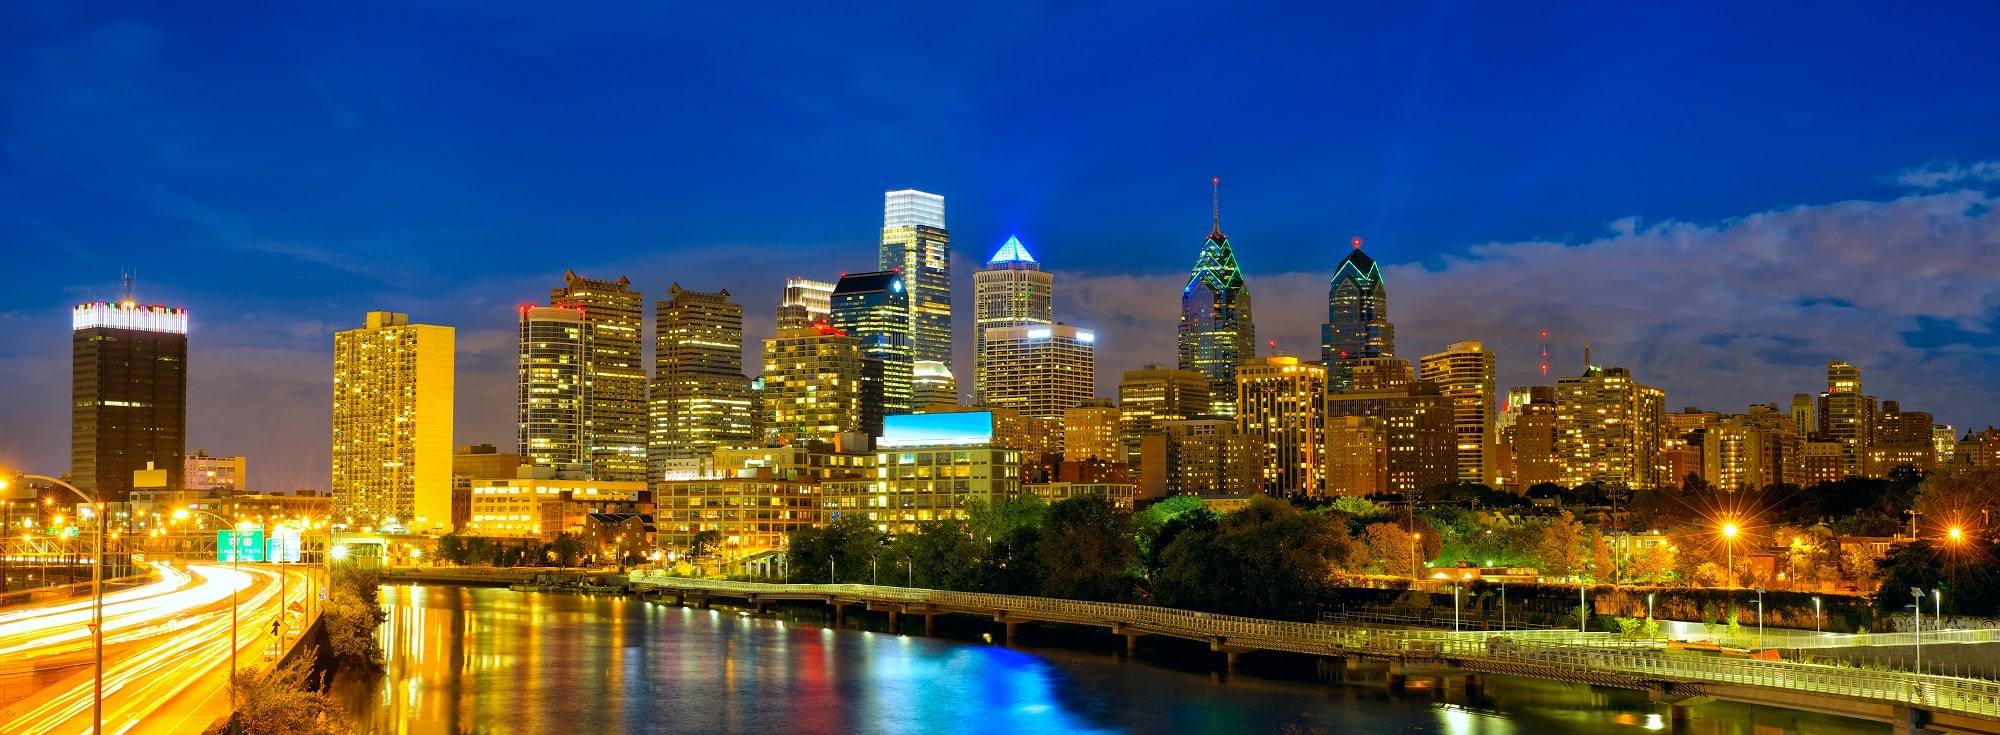 Philadelphia Free Business Directory - Business Services in